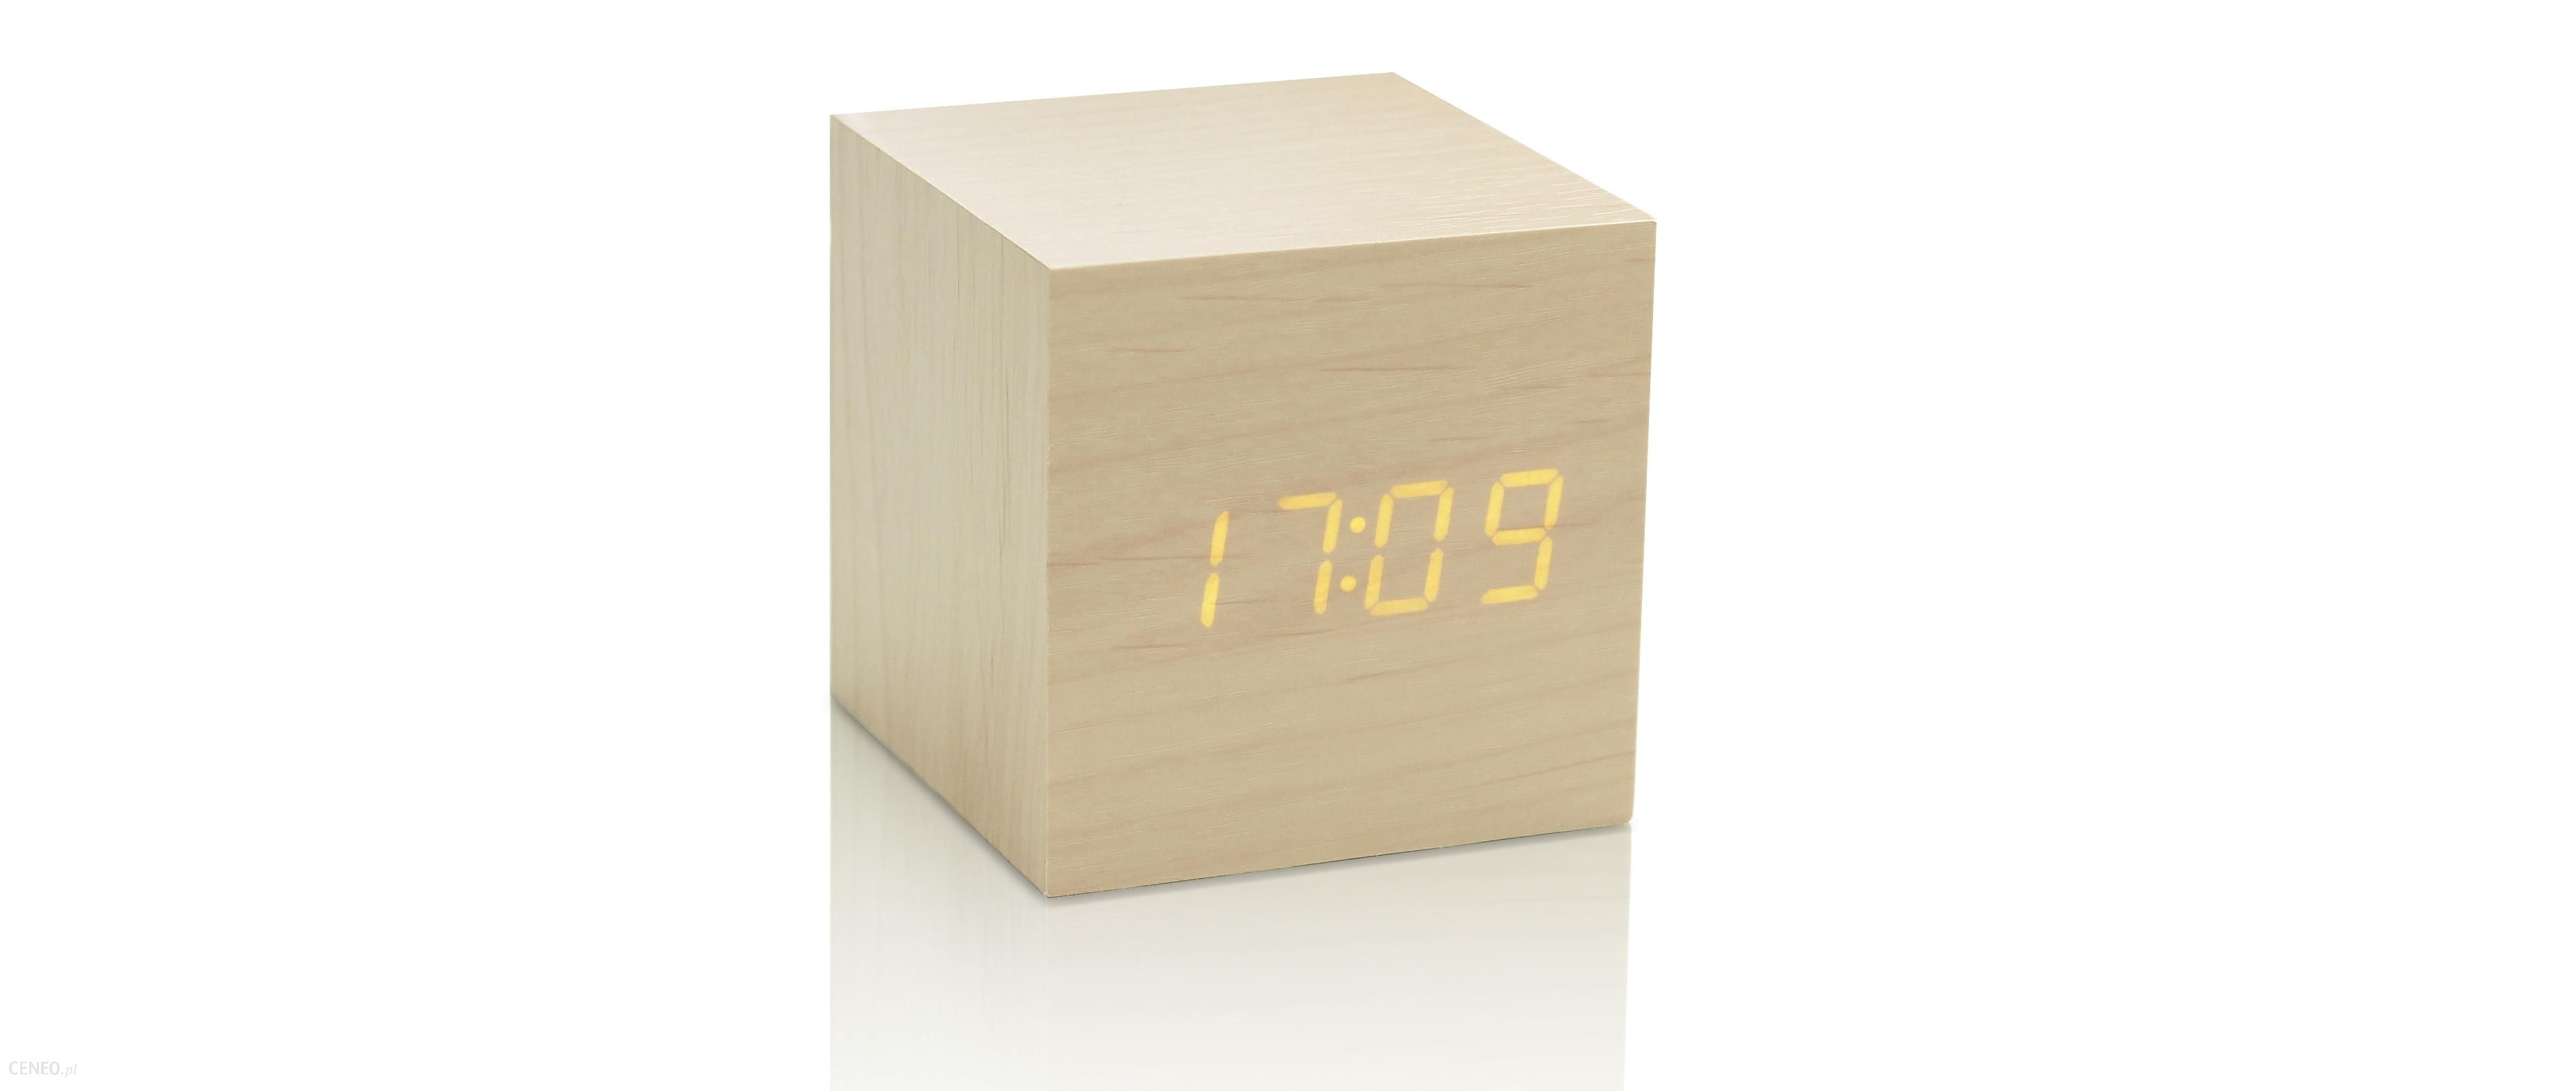 _uploads_images_subpages_1363_subpage_i-gingko-zegar-stolowy-budzik-cube-maple-click-clock-by-gk08w18.jpg